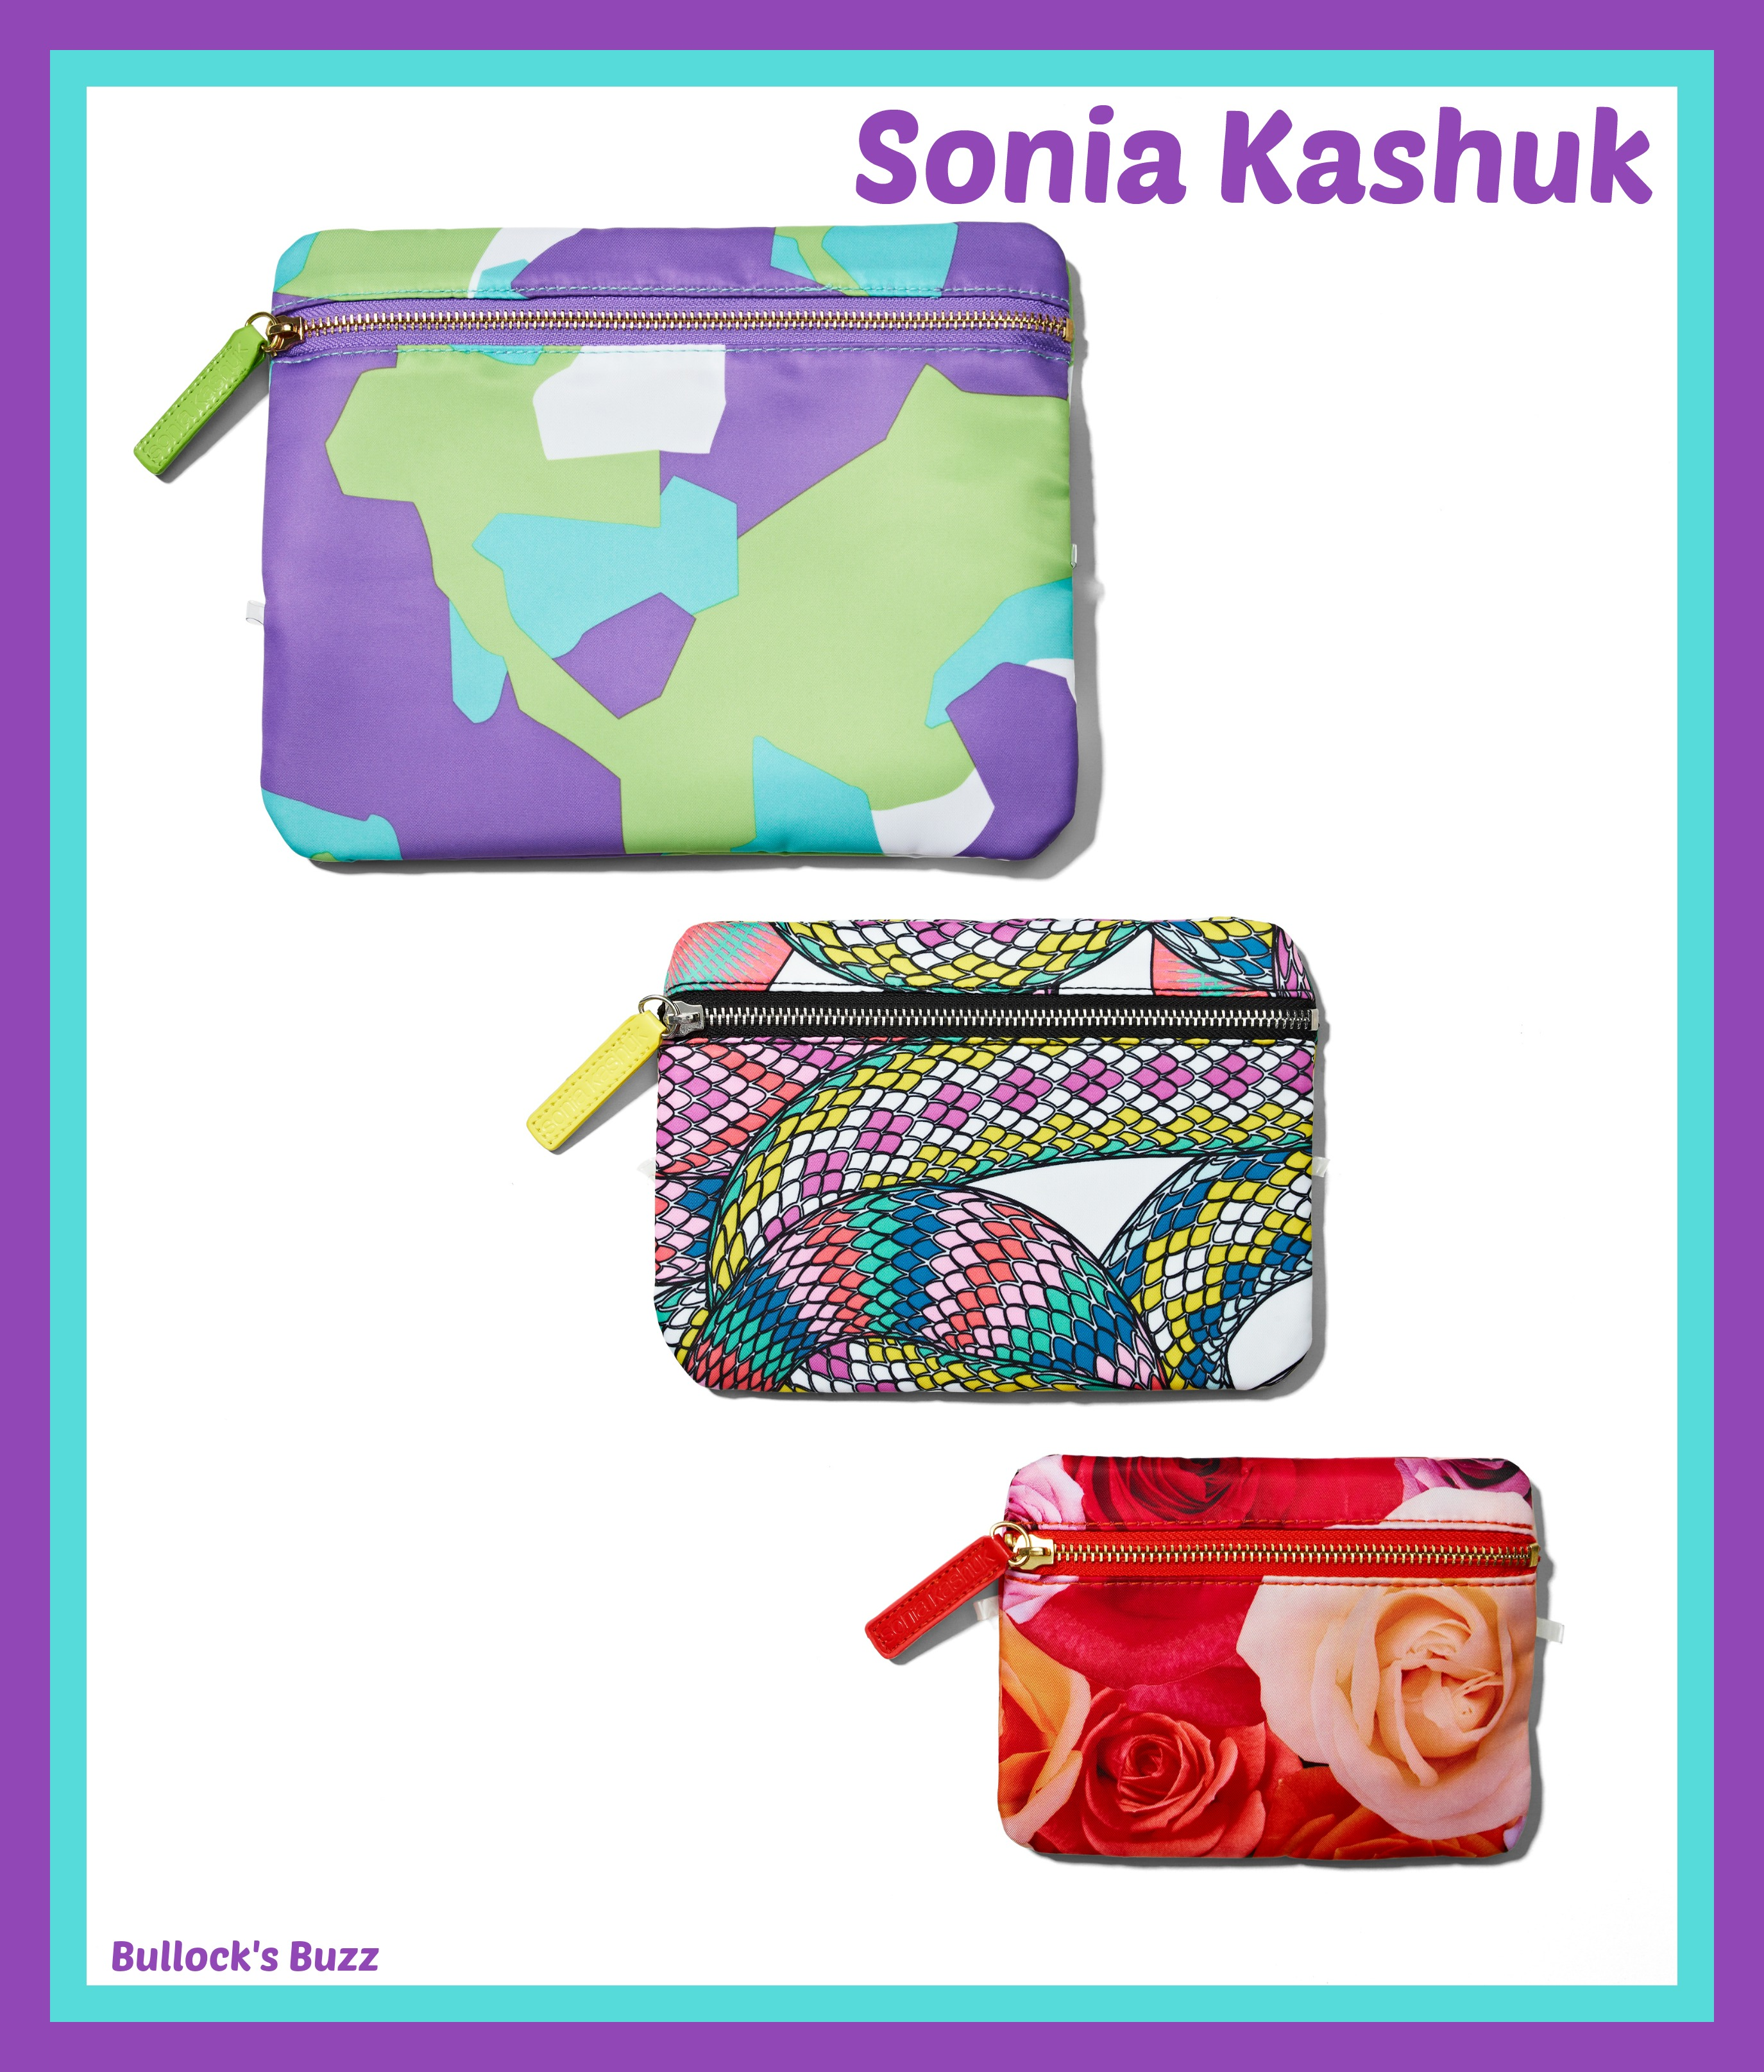 Catenya Smart Sun Travel Style Solutions Sonia Kashuk travel bags